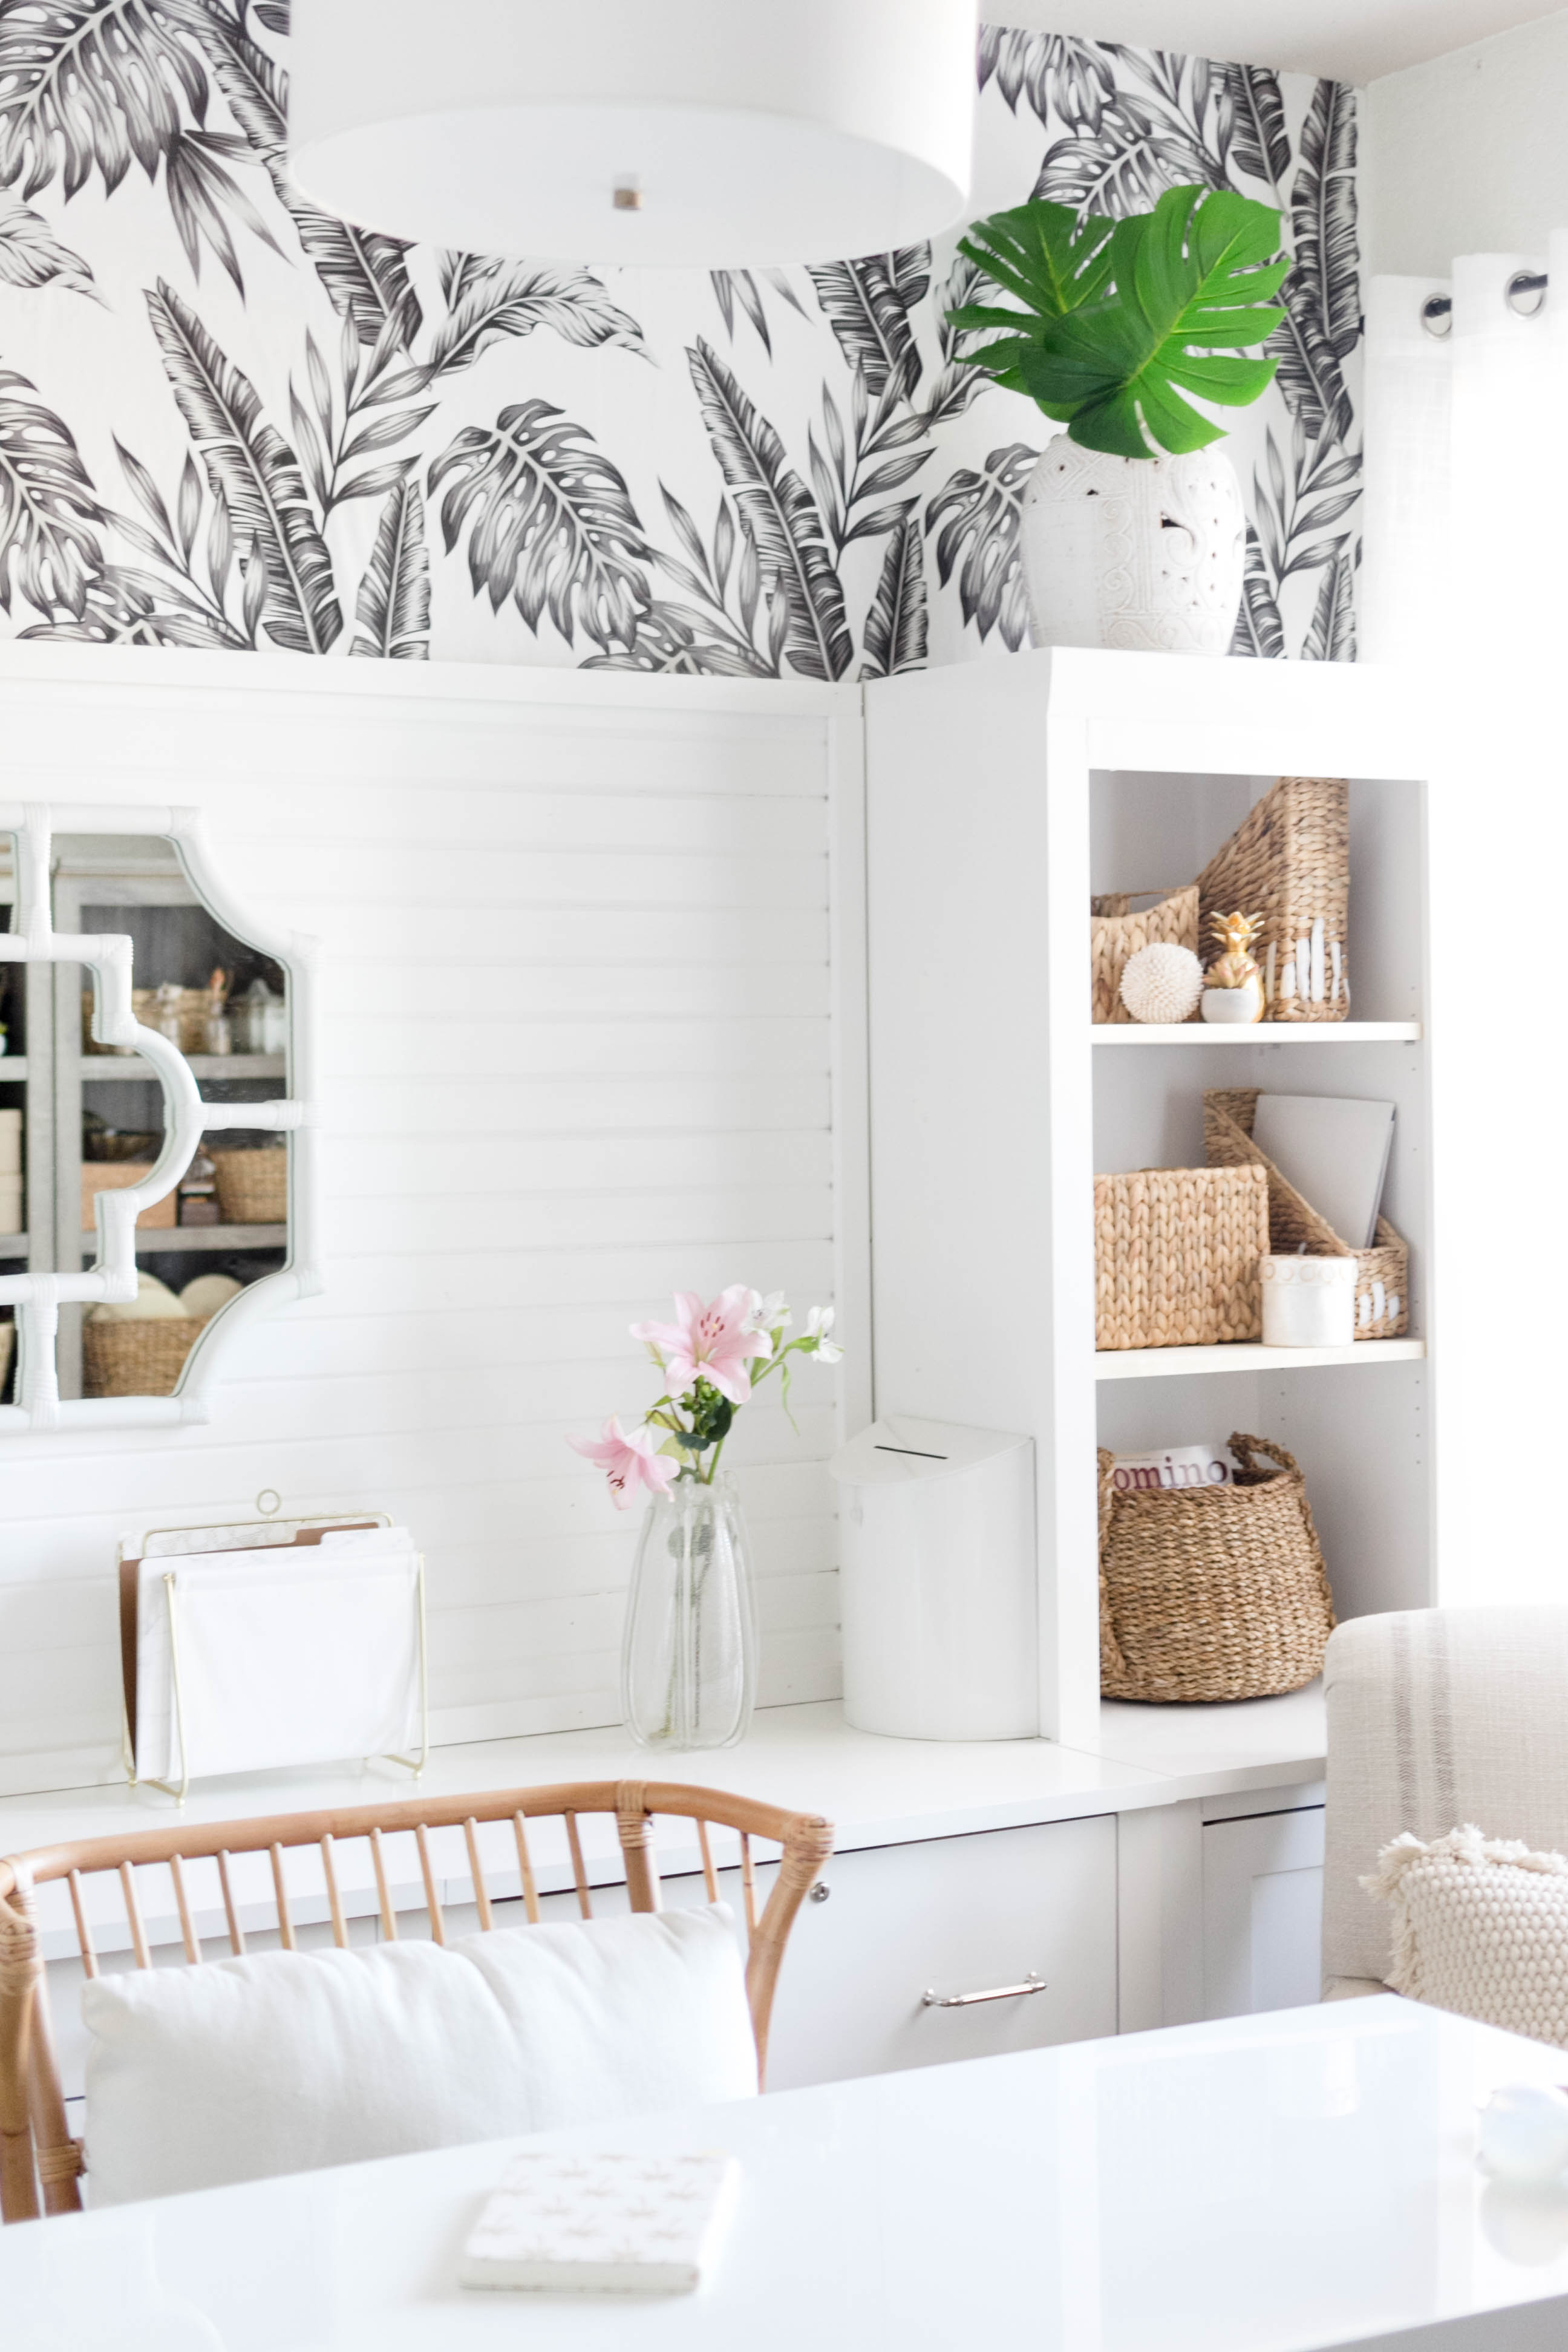 Tropic-Chic-Home-Office-IrisNacole.com-31